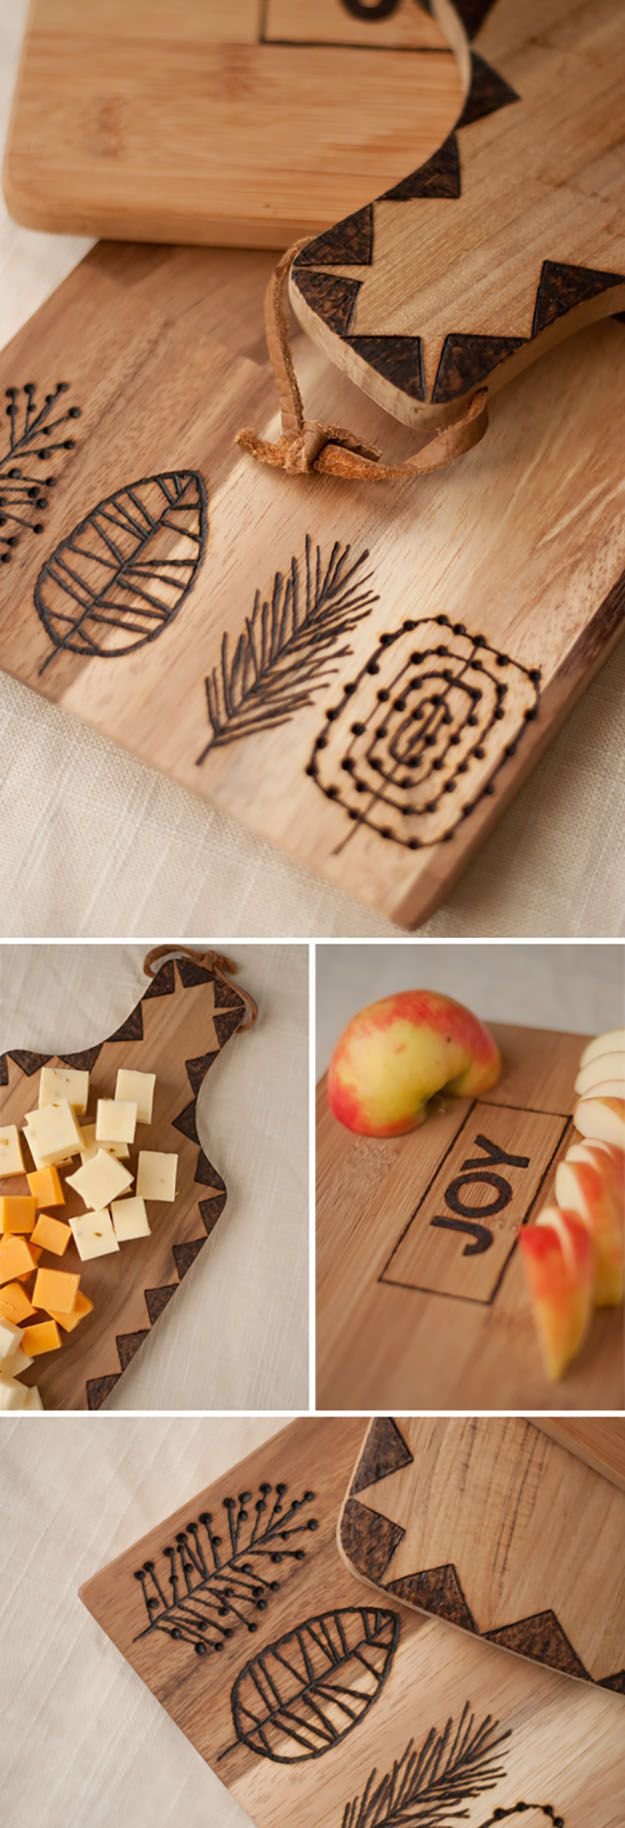 DIY Gifts for Friends & Family | DIY Kitchen Ideas | Etched Wooden Cutting Board...